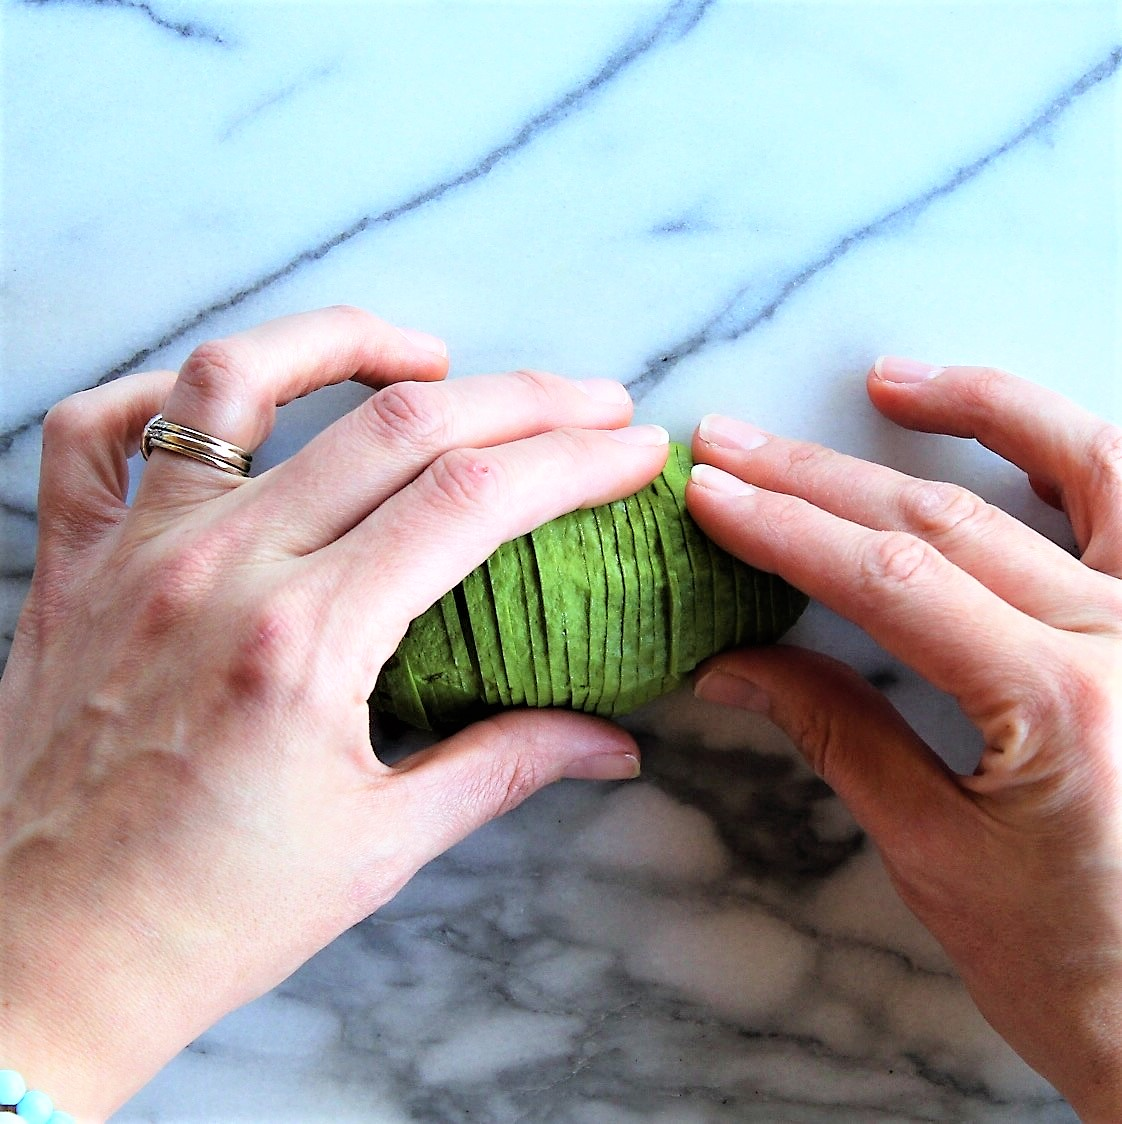 Slowly and gently, starting on your dominant hand side, begin to fan out the slices as shown.